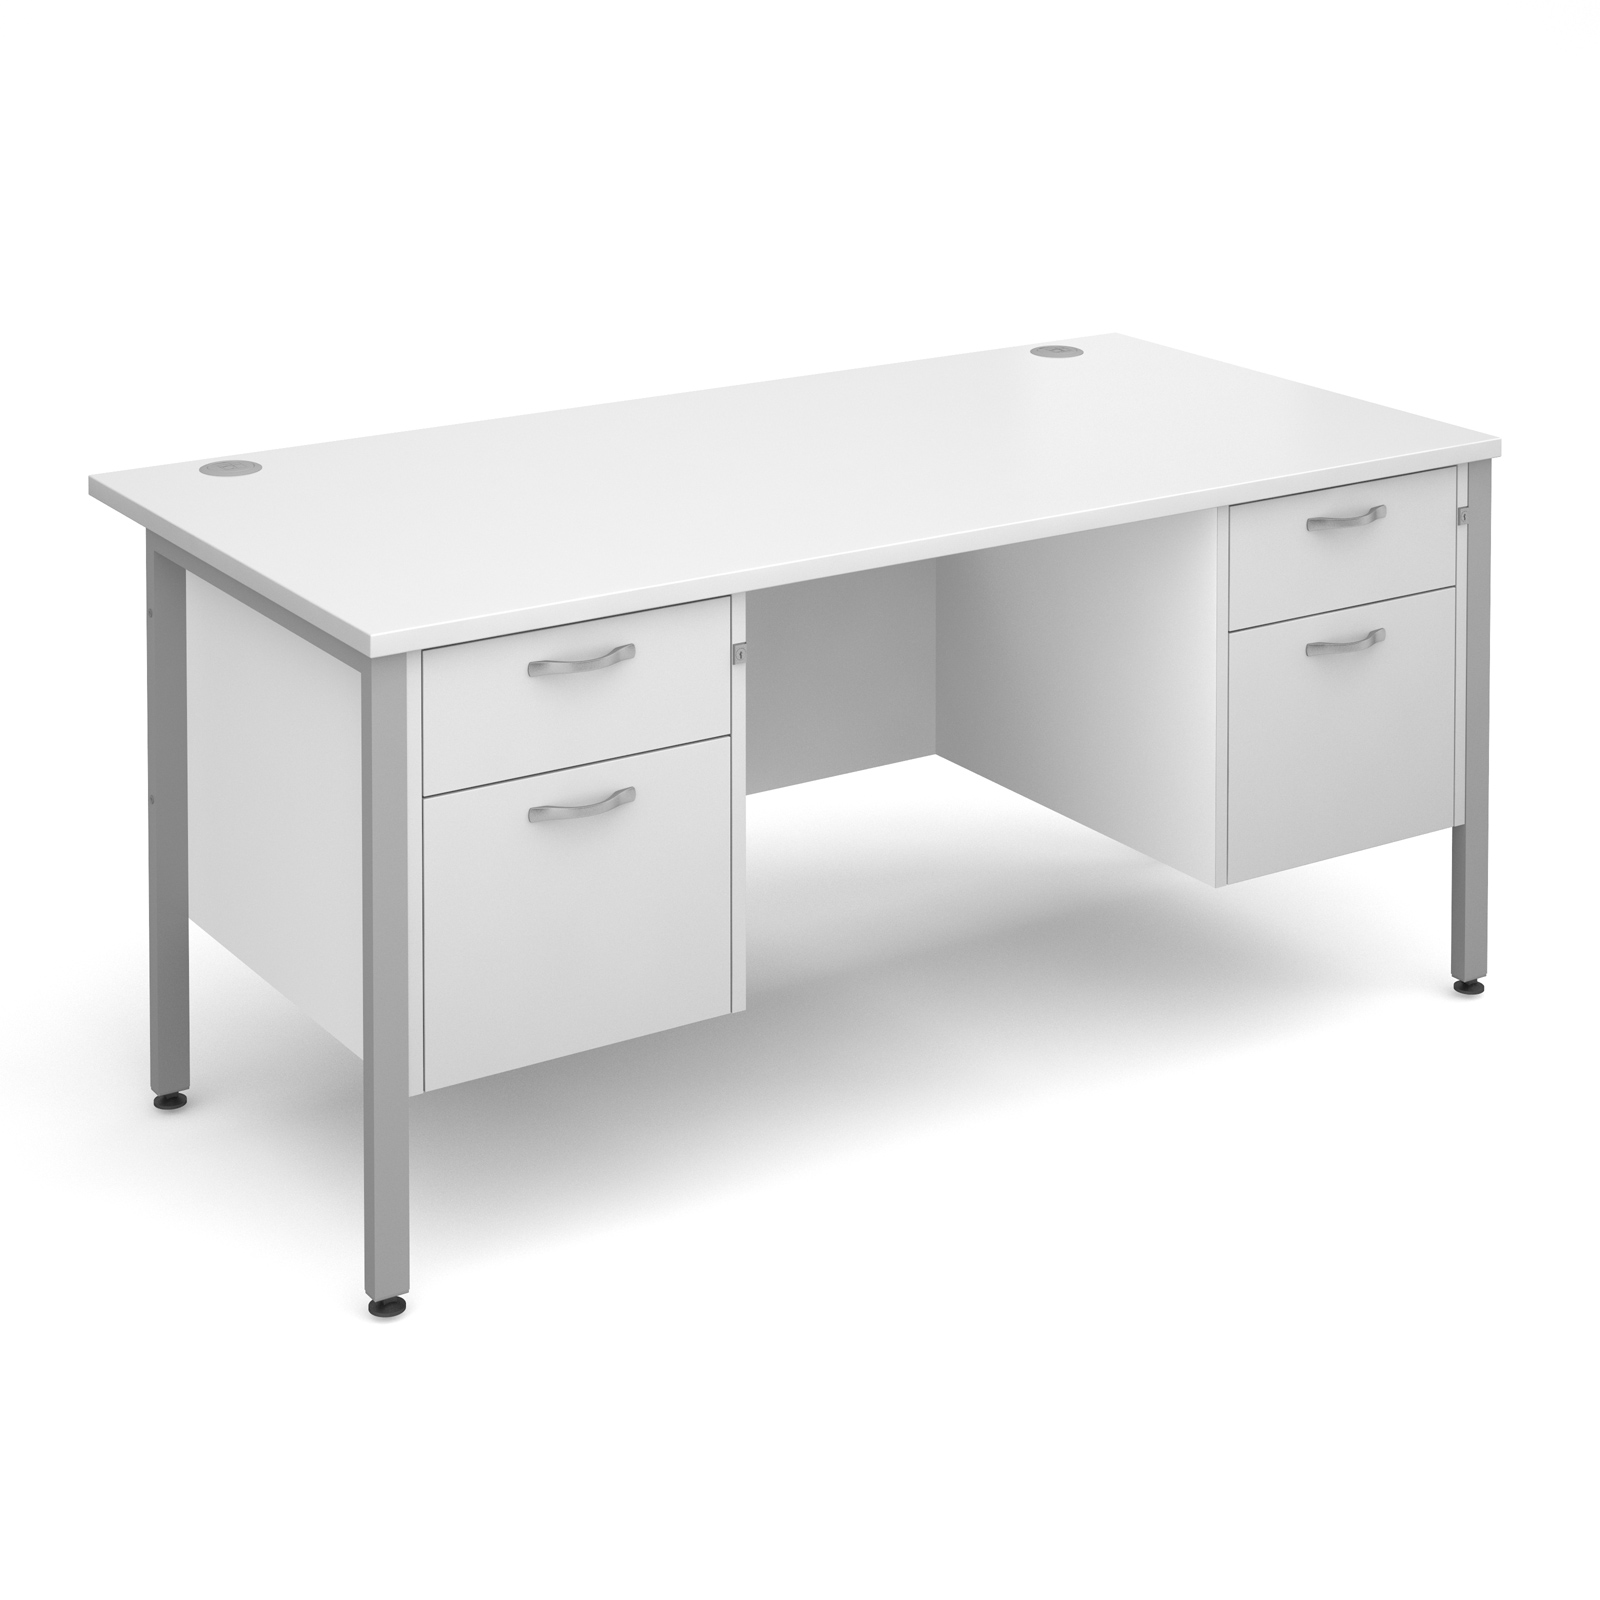 Active M25 SHL Straight Desk | Double Pedestal